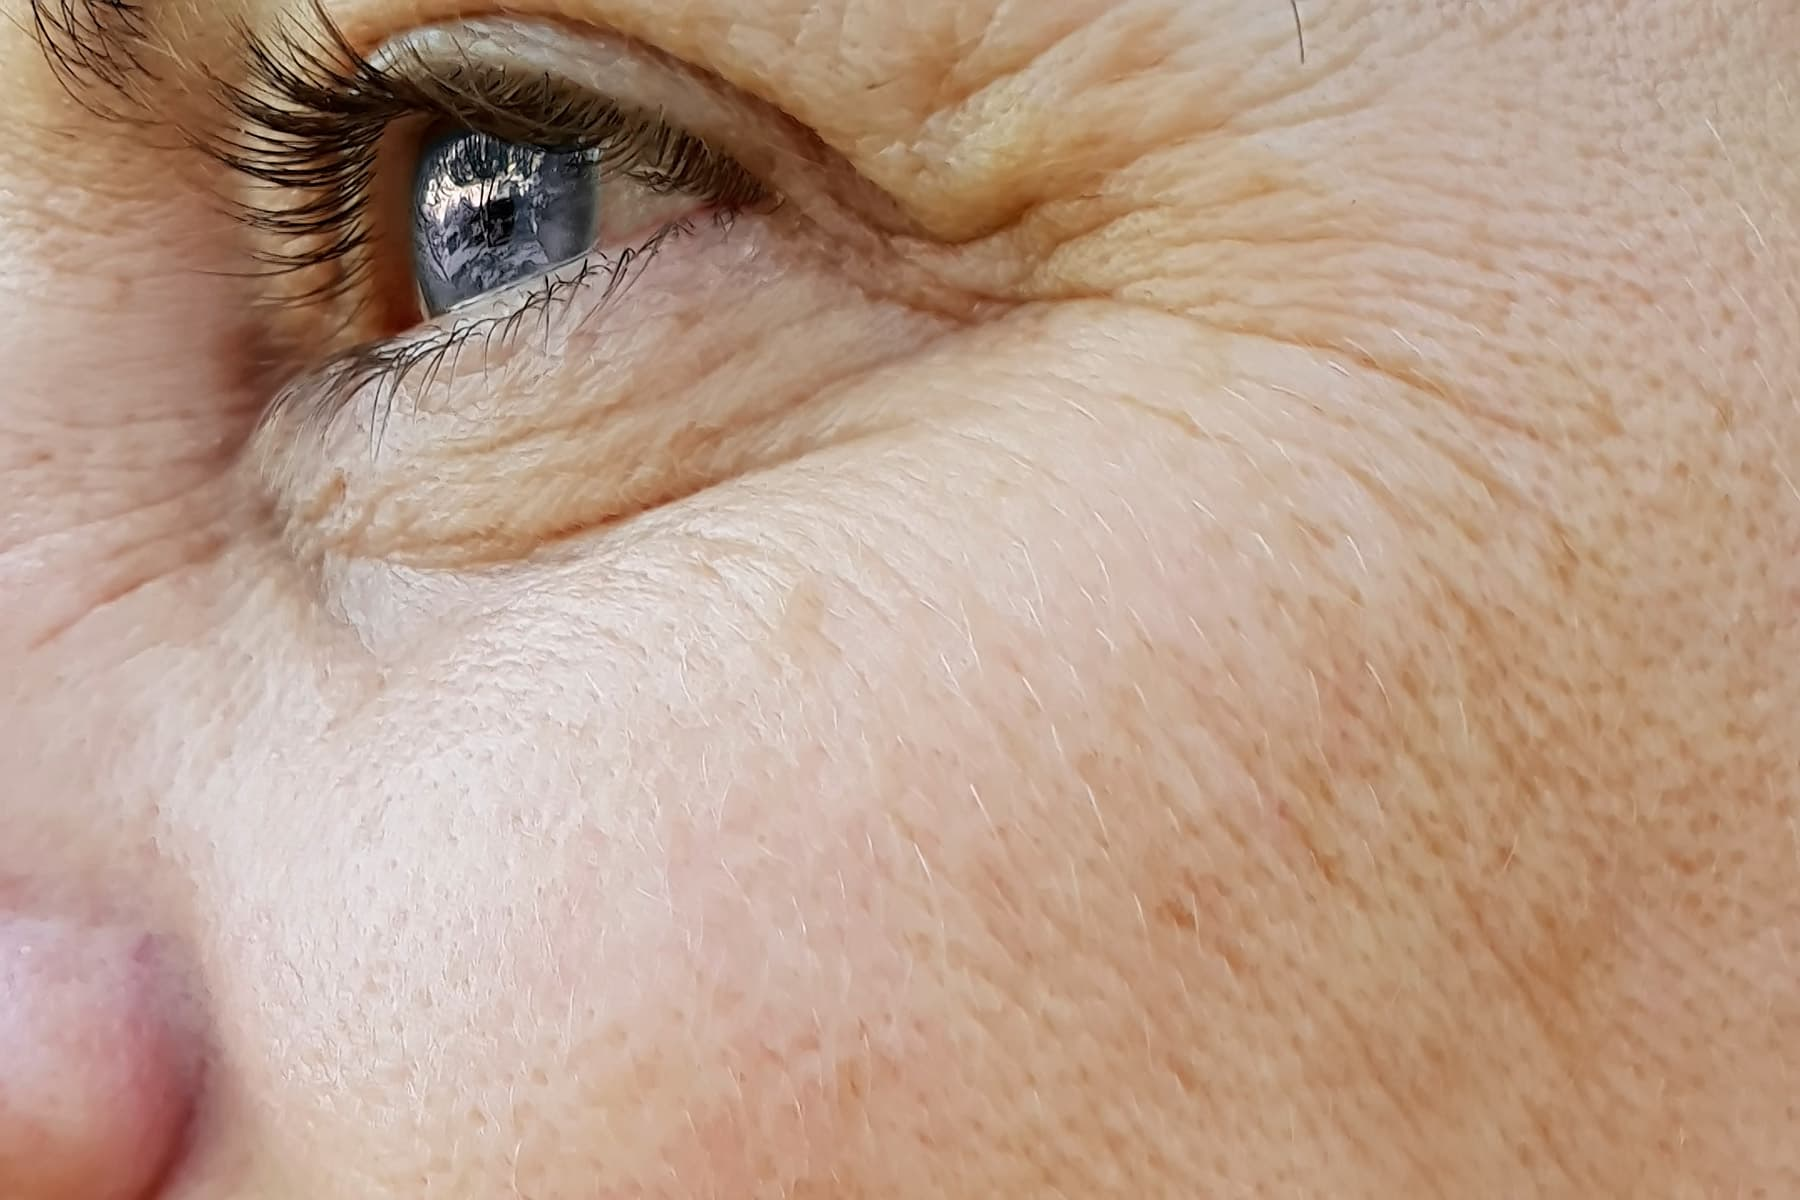 Wrinkles Causes, Sun Damage, Treatments, and More